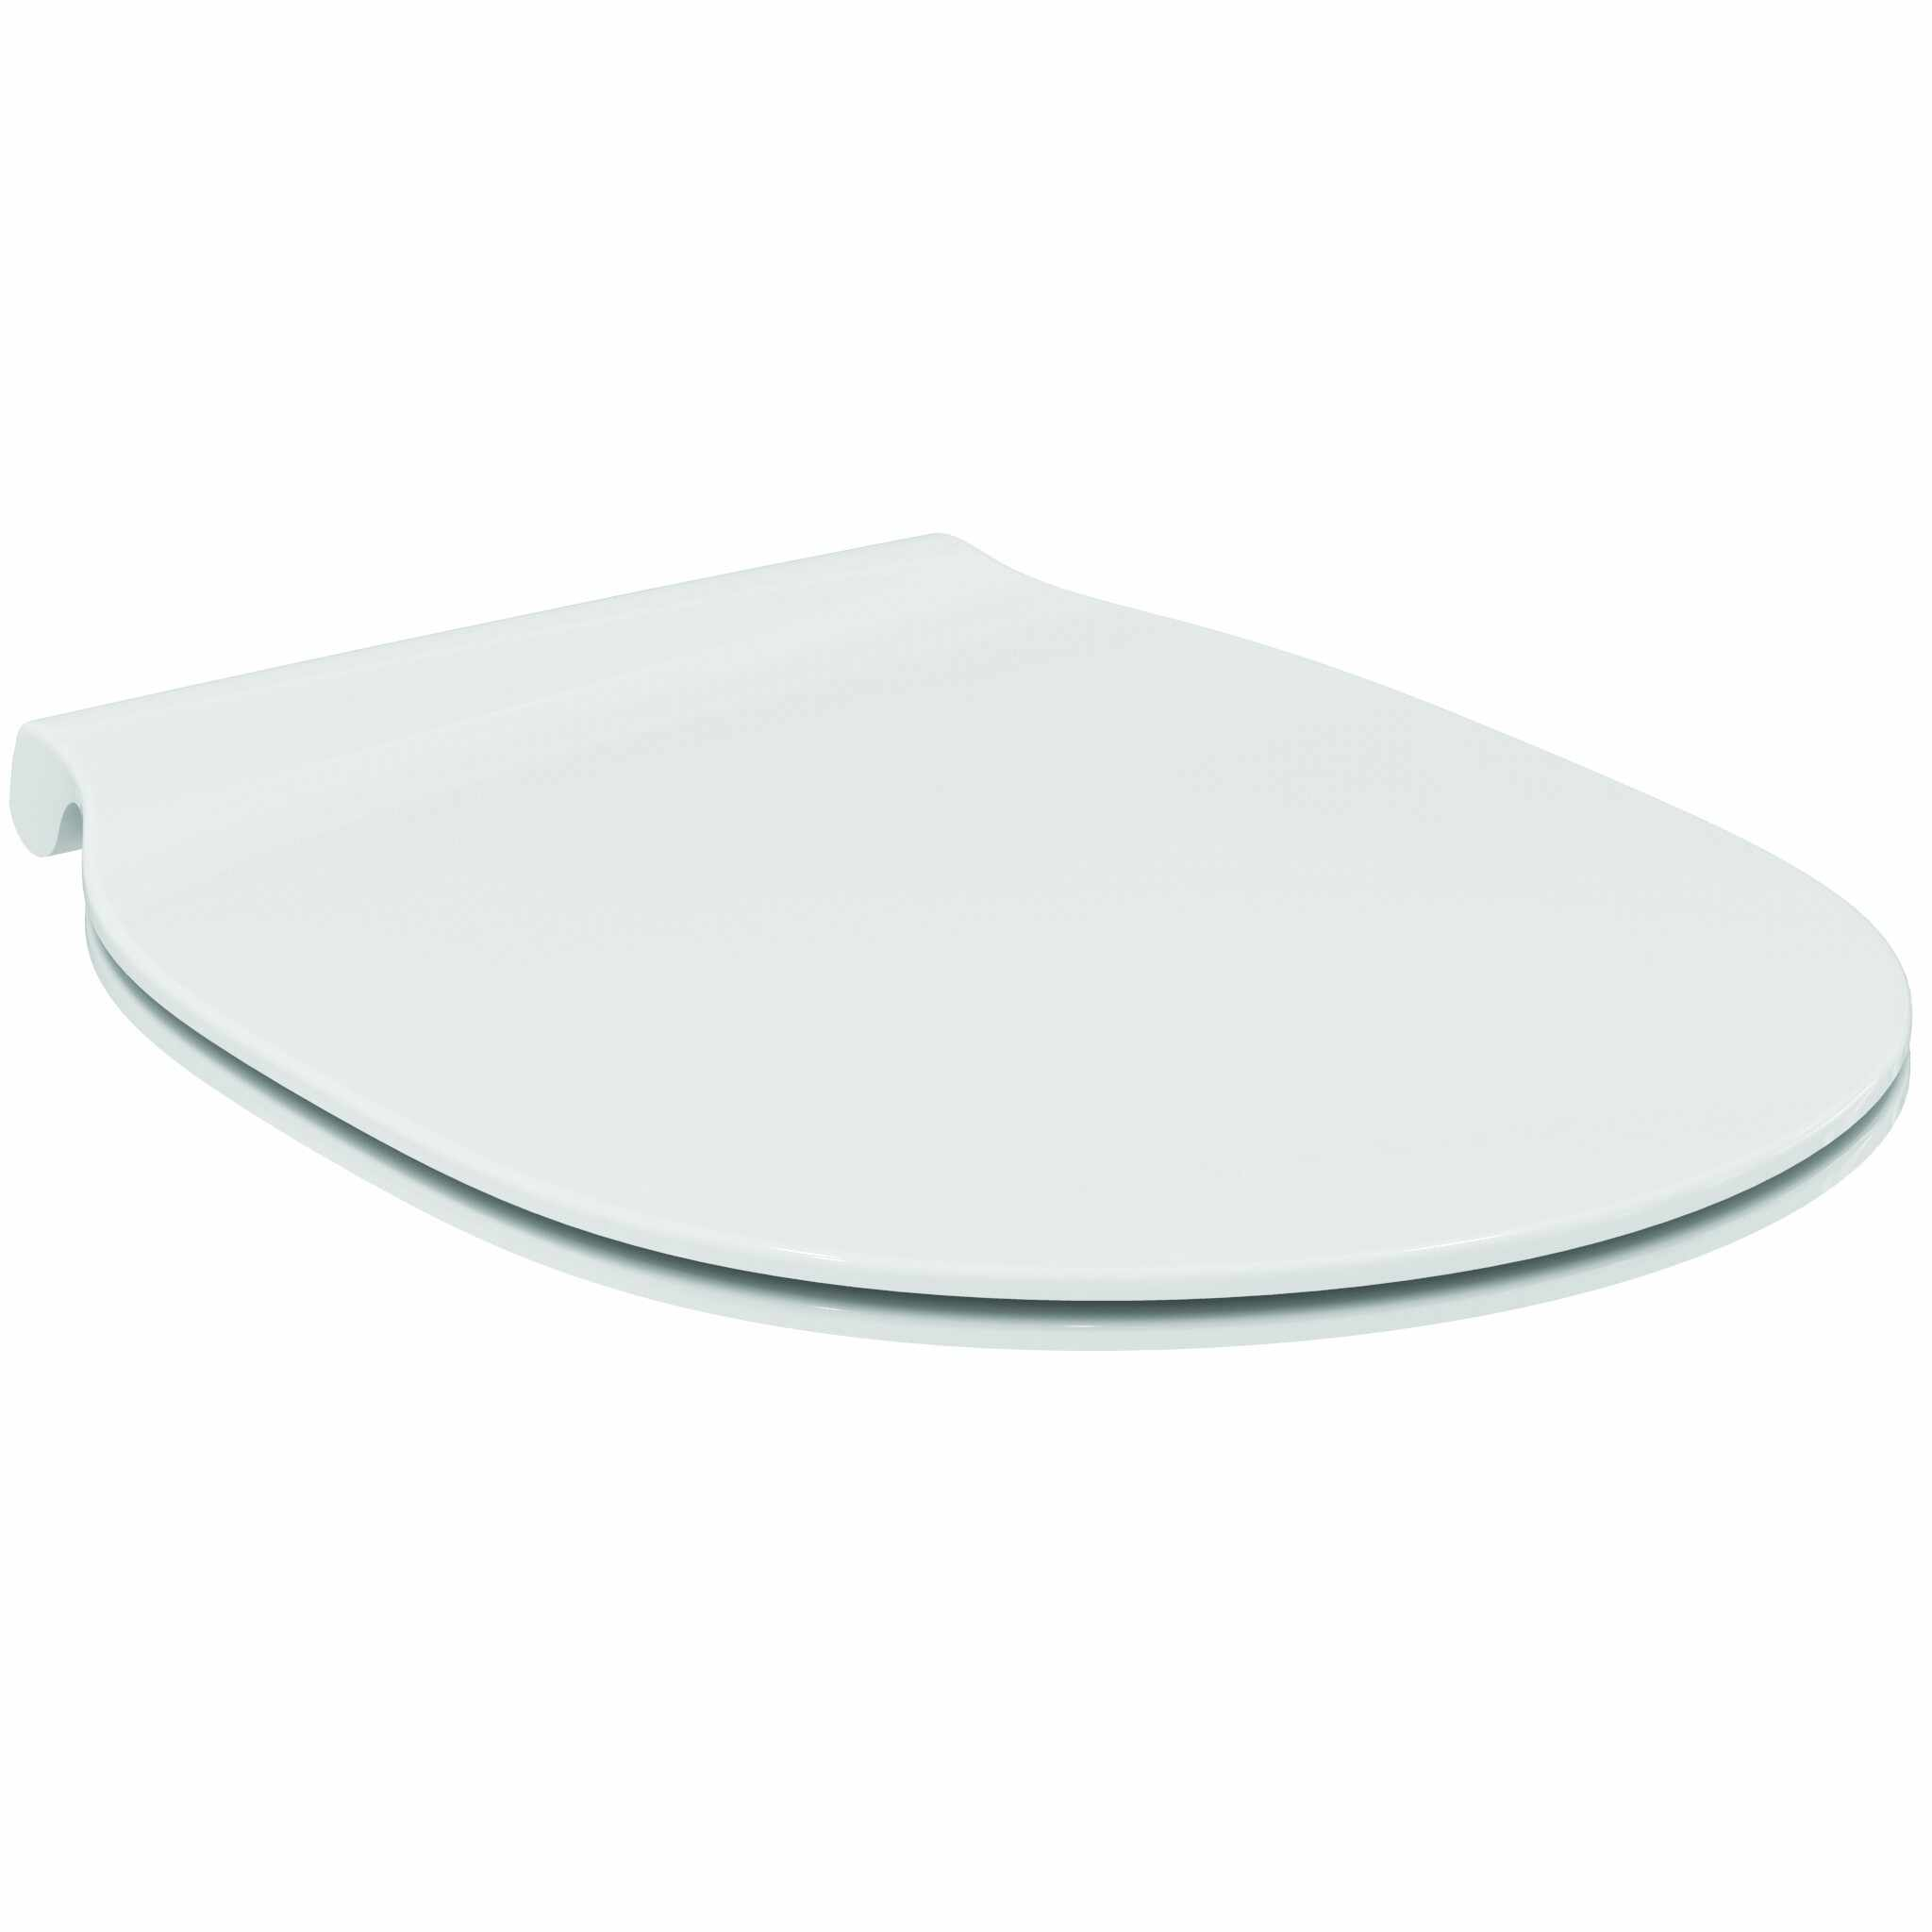 Capac WC Ideal Standard Thin slim pentru Connect Air la pret 193.67 lei